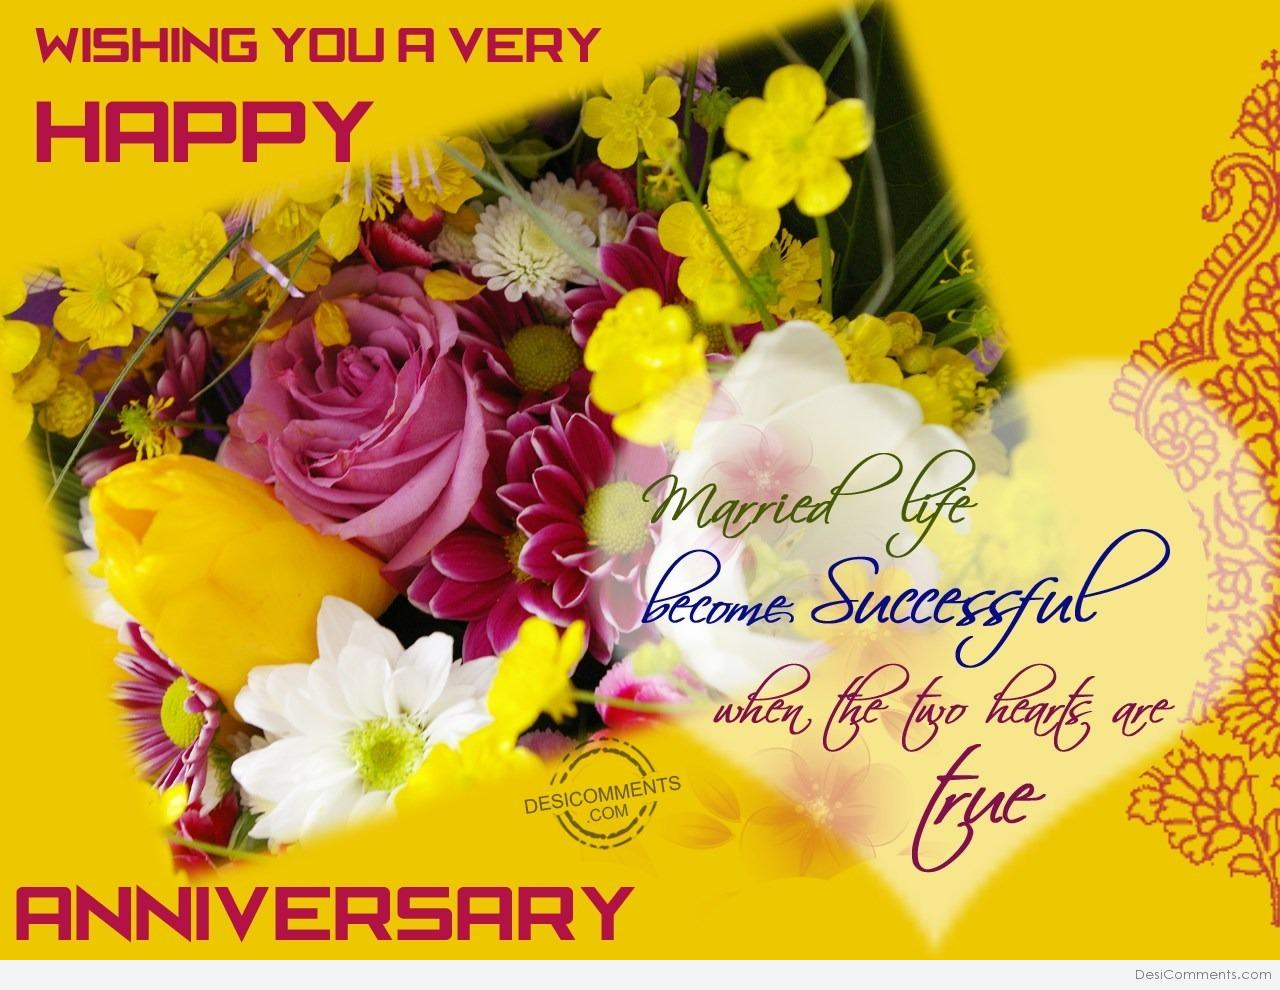 Wishing You Very Happy Wedding Anniversary - DesiComments.com